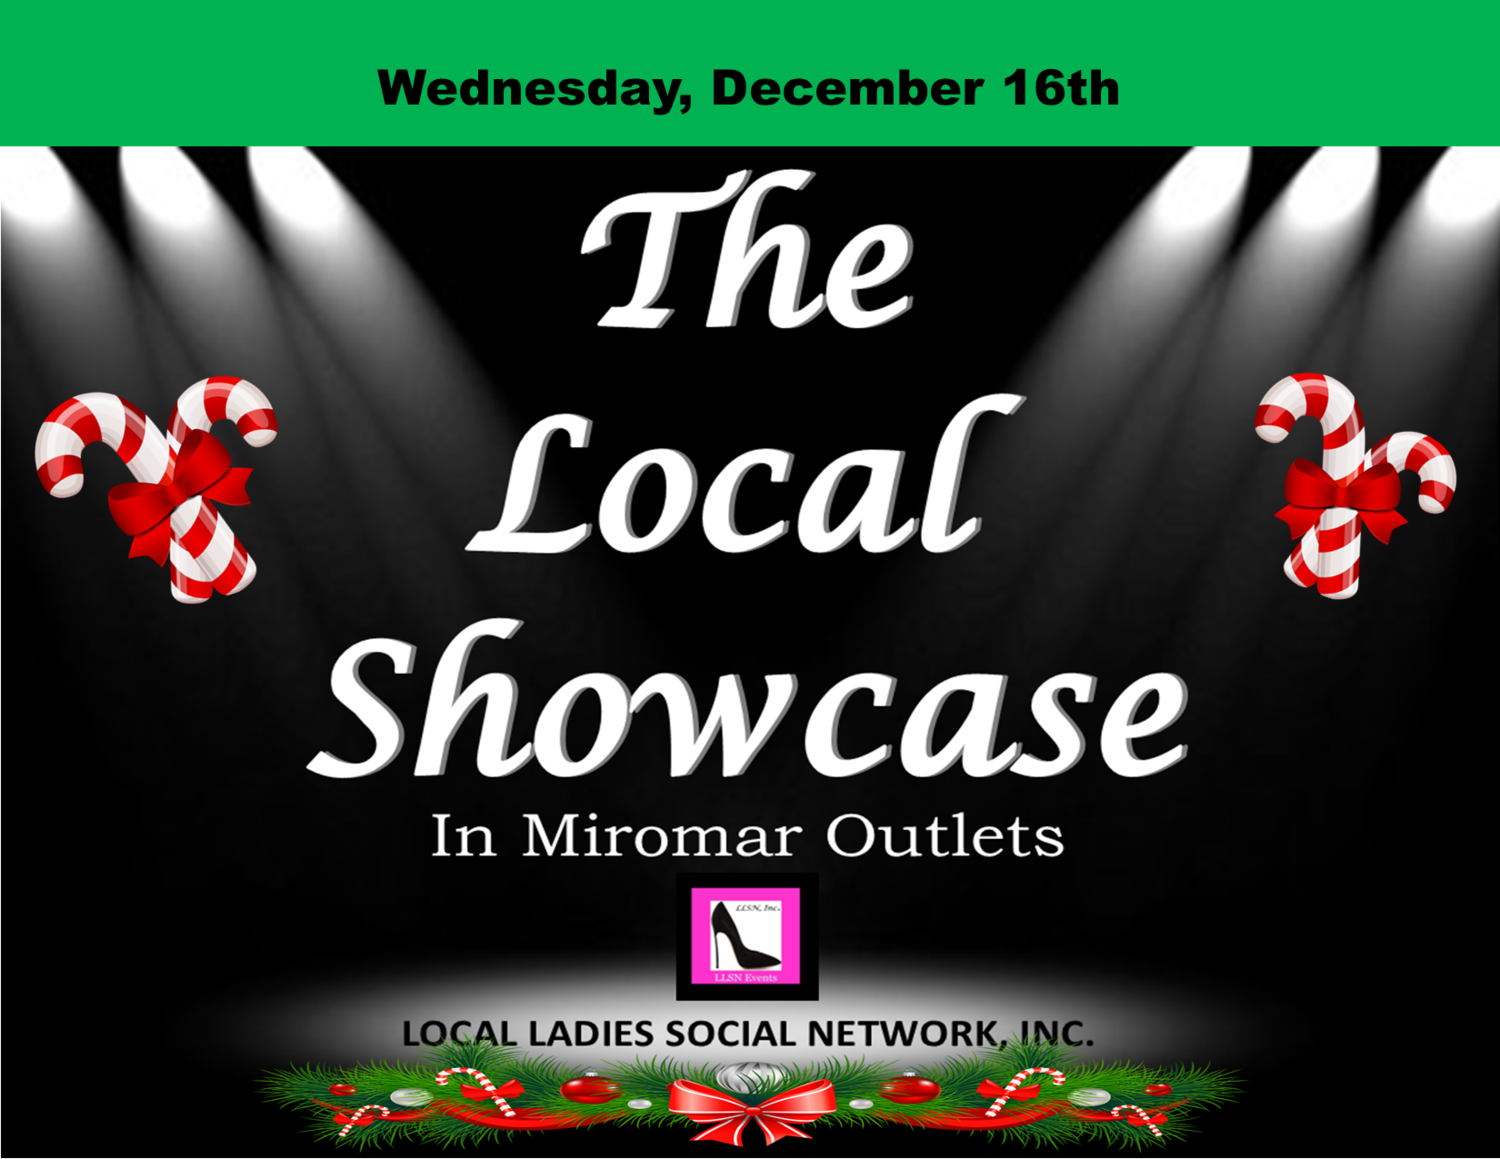 Wednesday, December 16th 11am-7pm